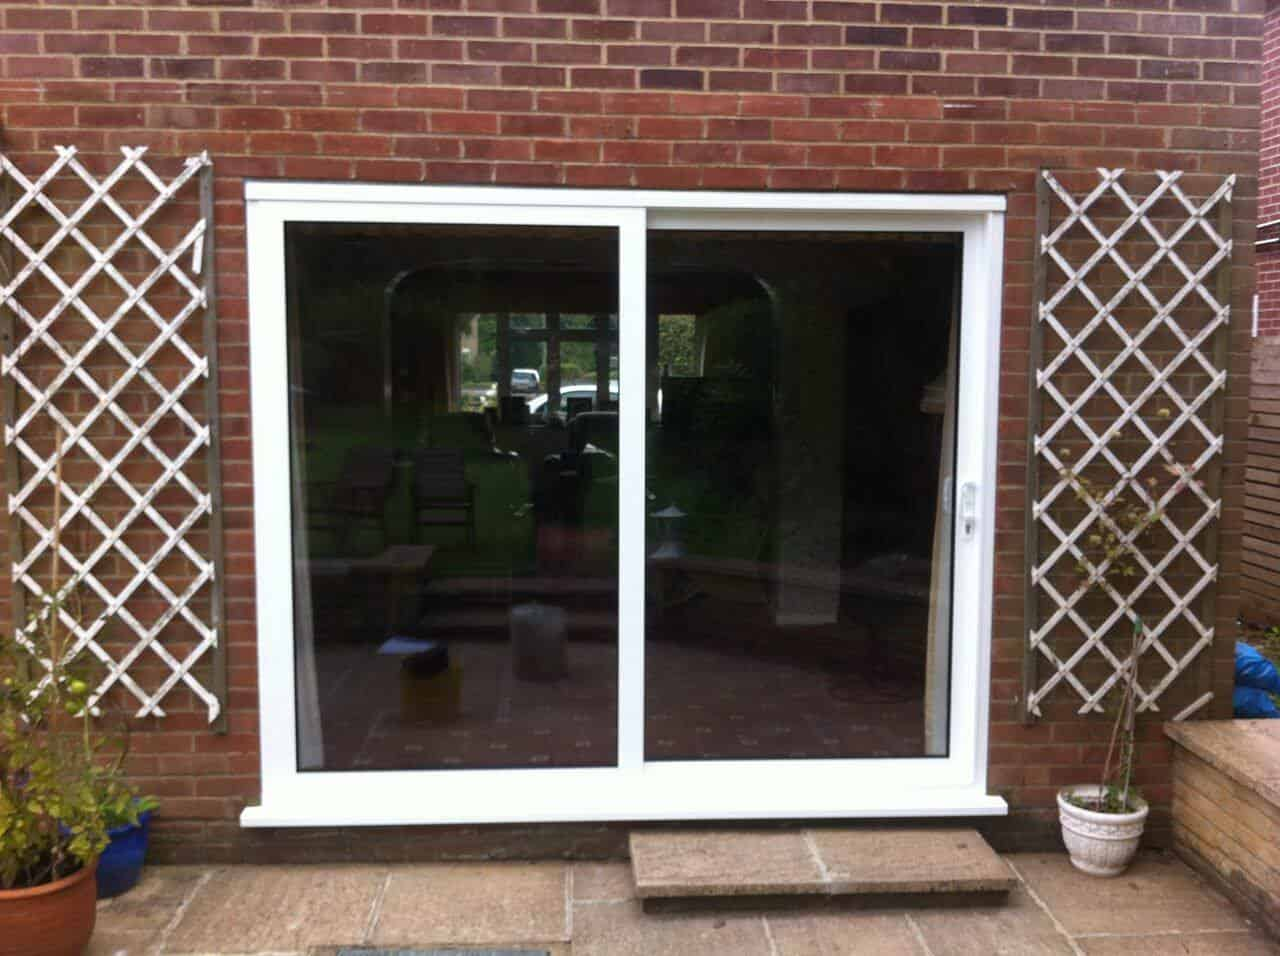 Upvc patio doors pangbourne double glazed doors reading for Patio doors with windows that open